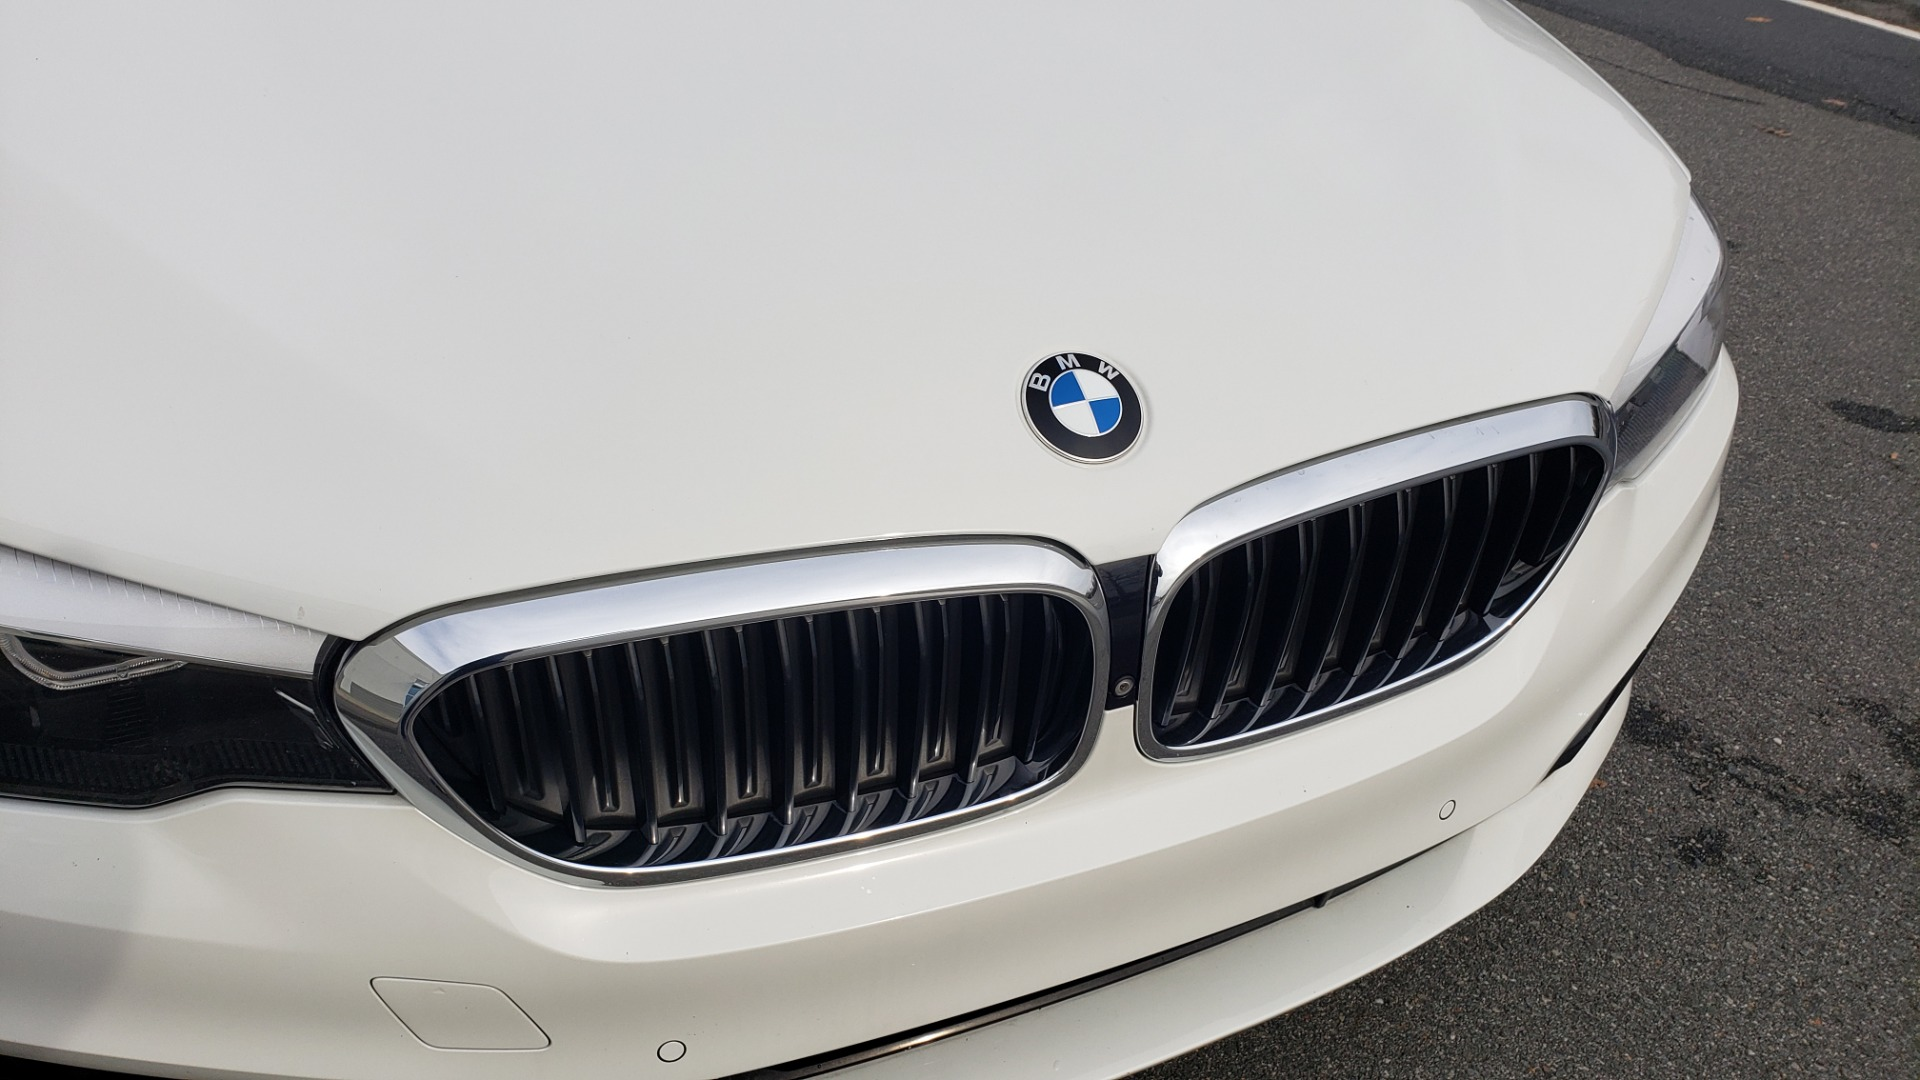 Used 2017 BMW 5 SERIES 530I PREMIUM / DRVR ASST PLUS / NAV / HUD / SUNROOF / REARVIEW for sale Sold at Formula Imports in Charlotte NC 28227 32